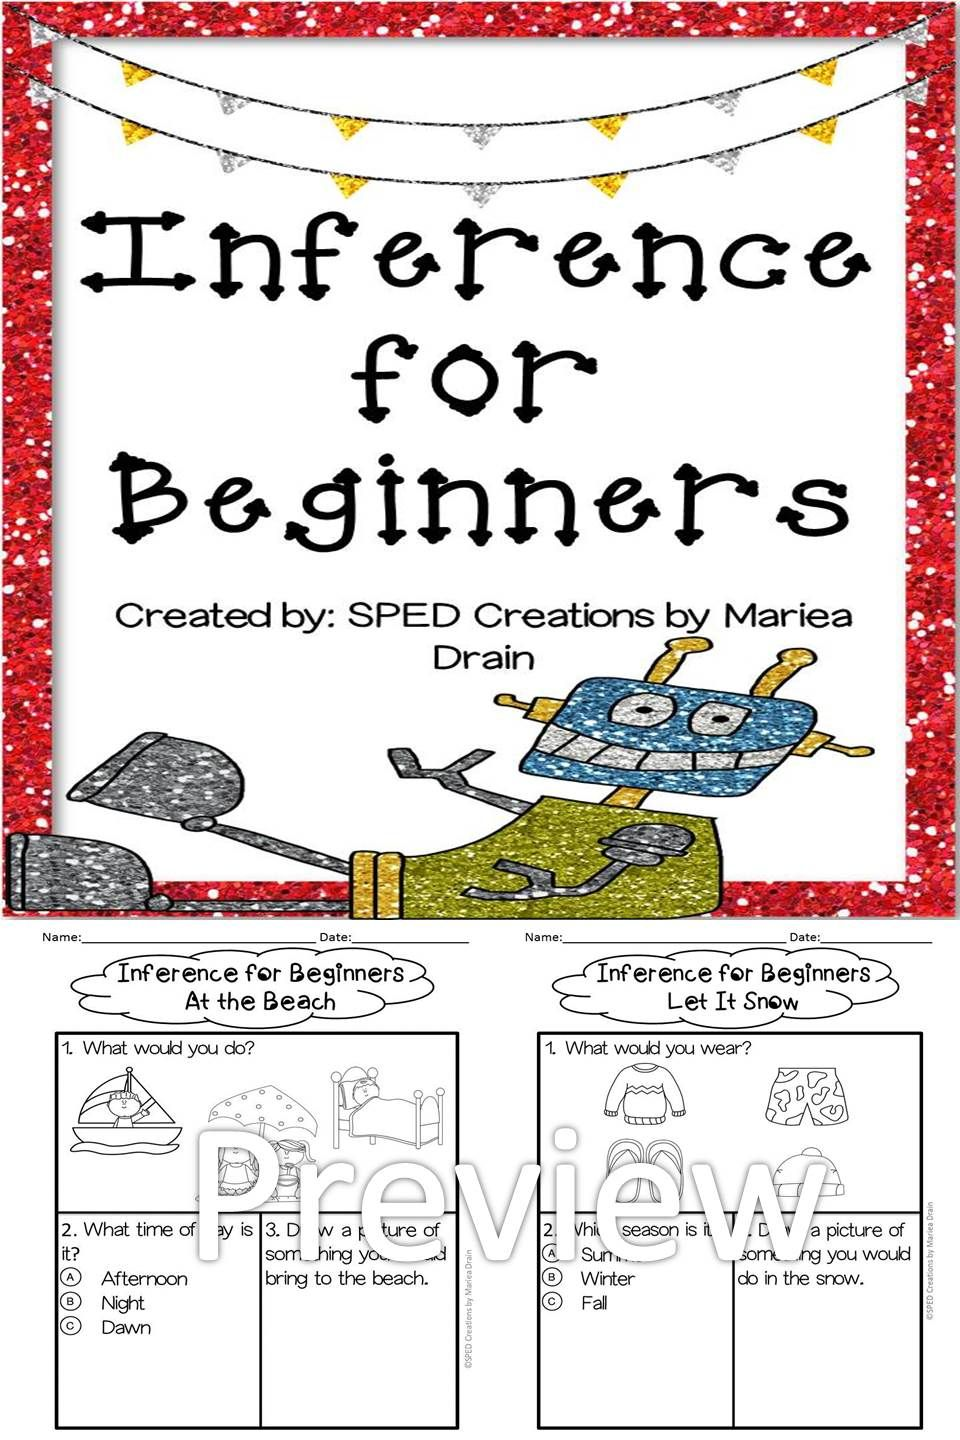 Free 2 Inference Activities For Beginners Inferencing Activities Inference Activities Inferencing